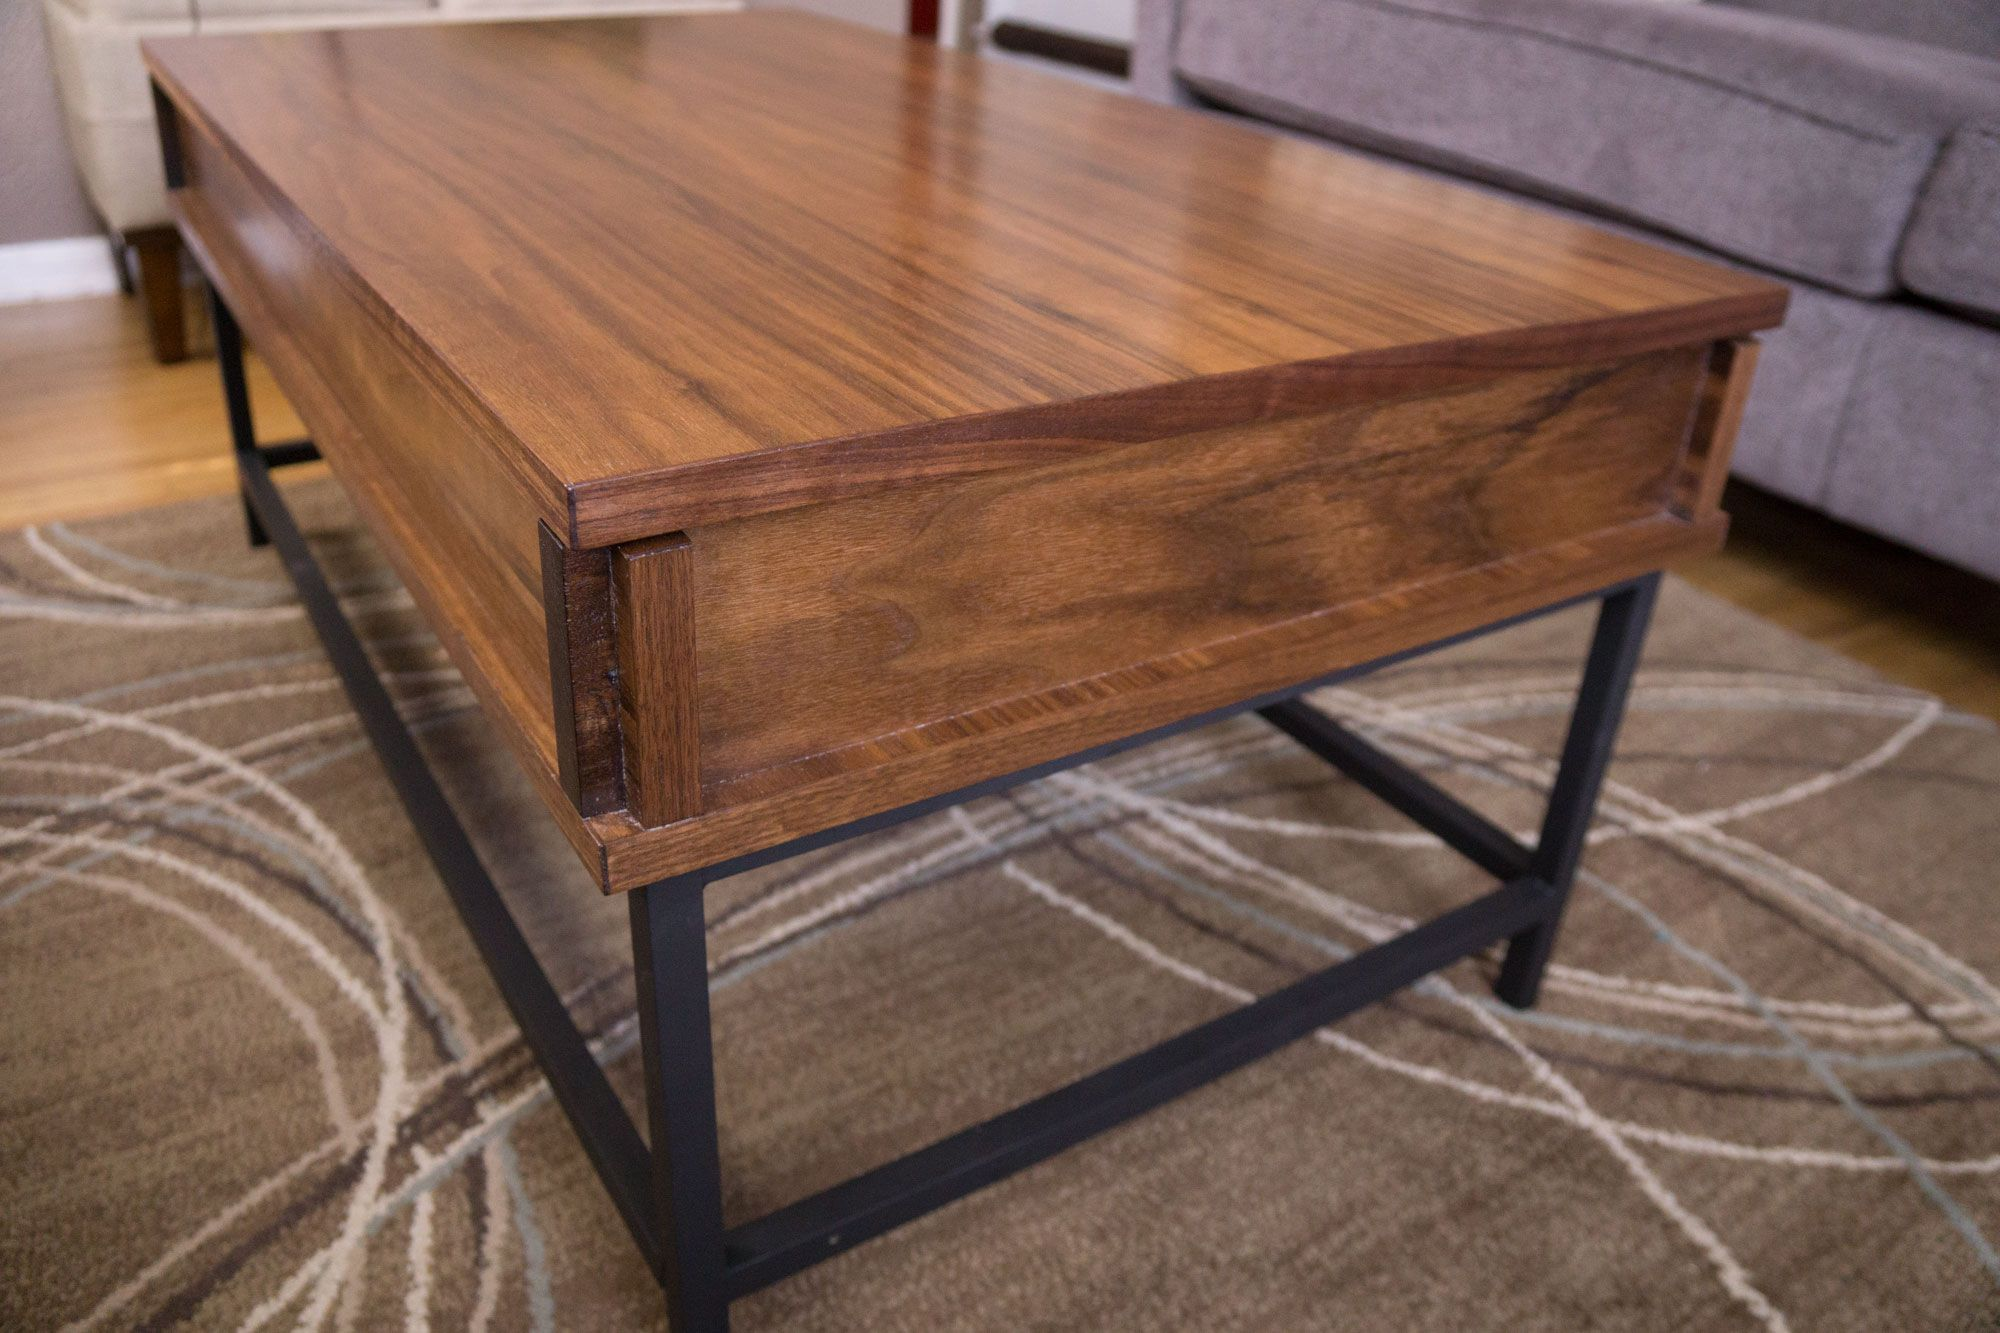 For This Easy Woodworking Project I M Making A Coffee Table With Lift Top Mechanism And Aluminum Legs The Allows Bringing Up To